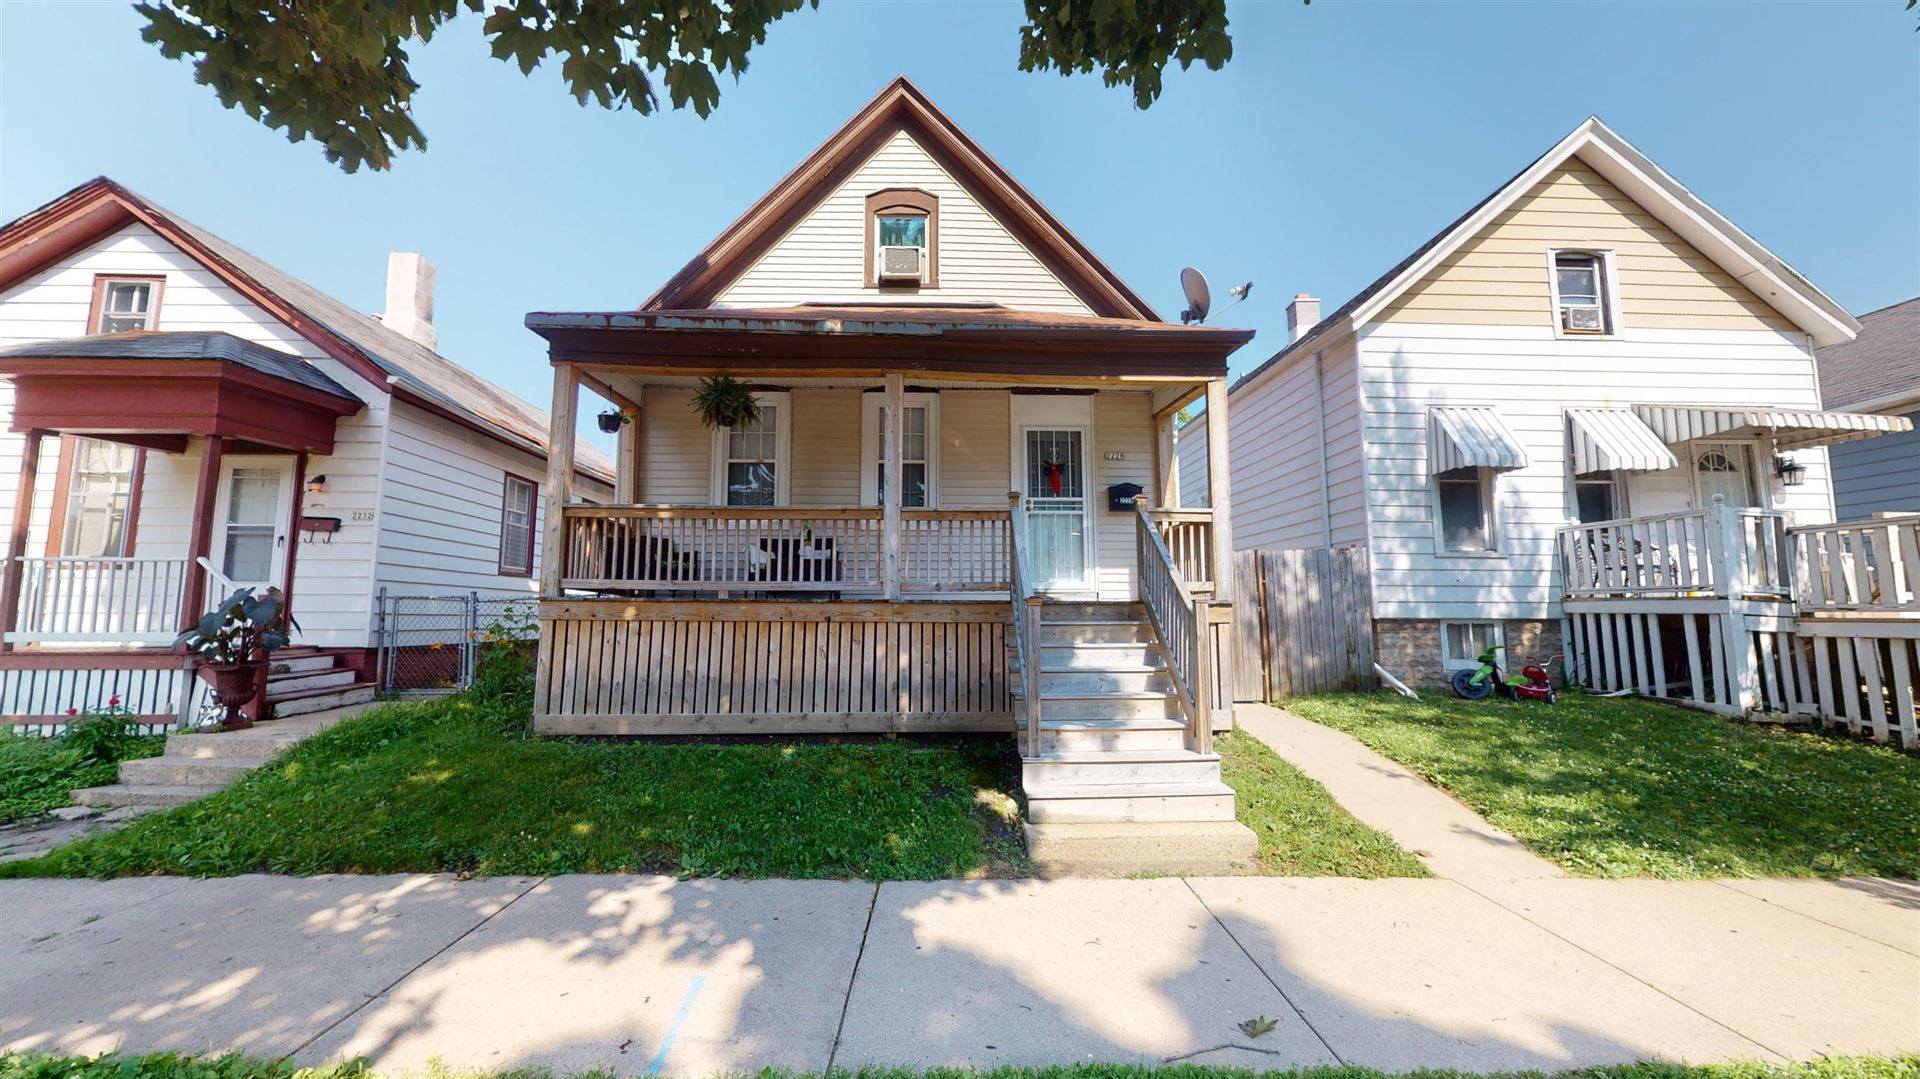 2228 N Buffum St, Milwaukee, WI 53212 - #: 1699202